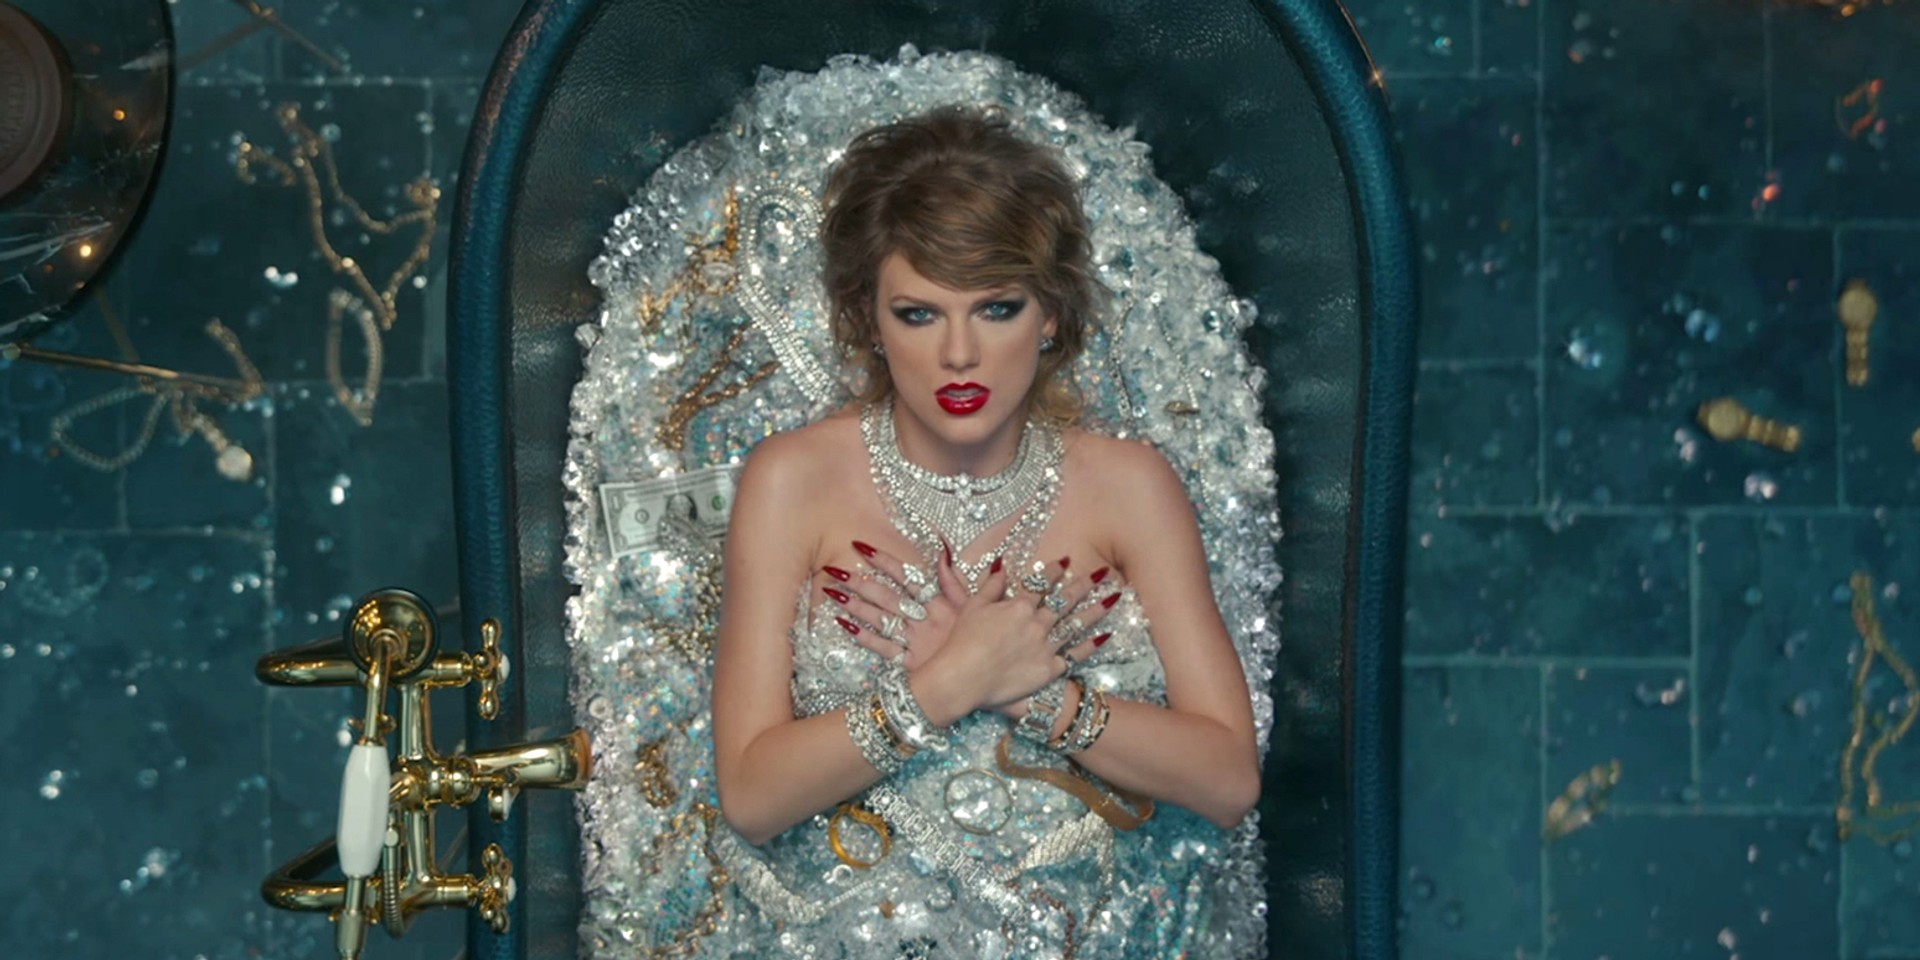 Taylor Swift's new concert ticket scheme will only benefit wealthy fans